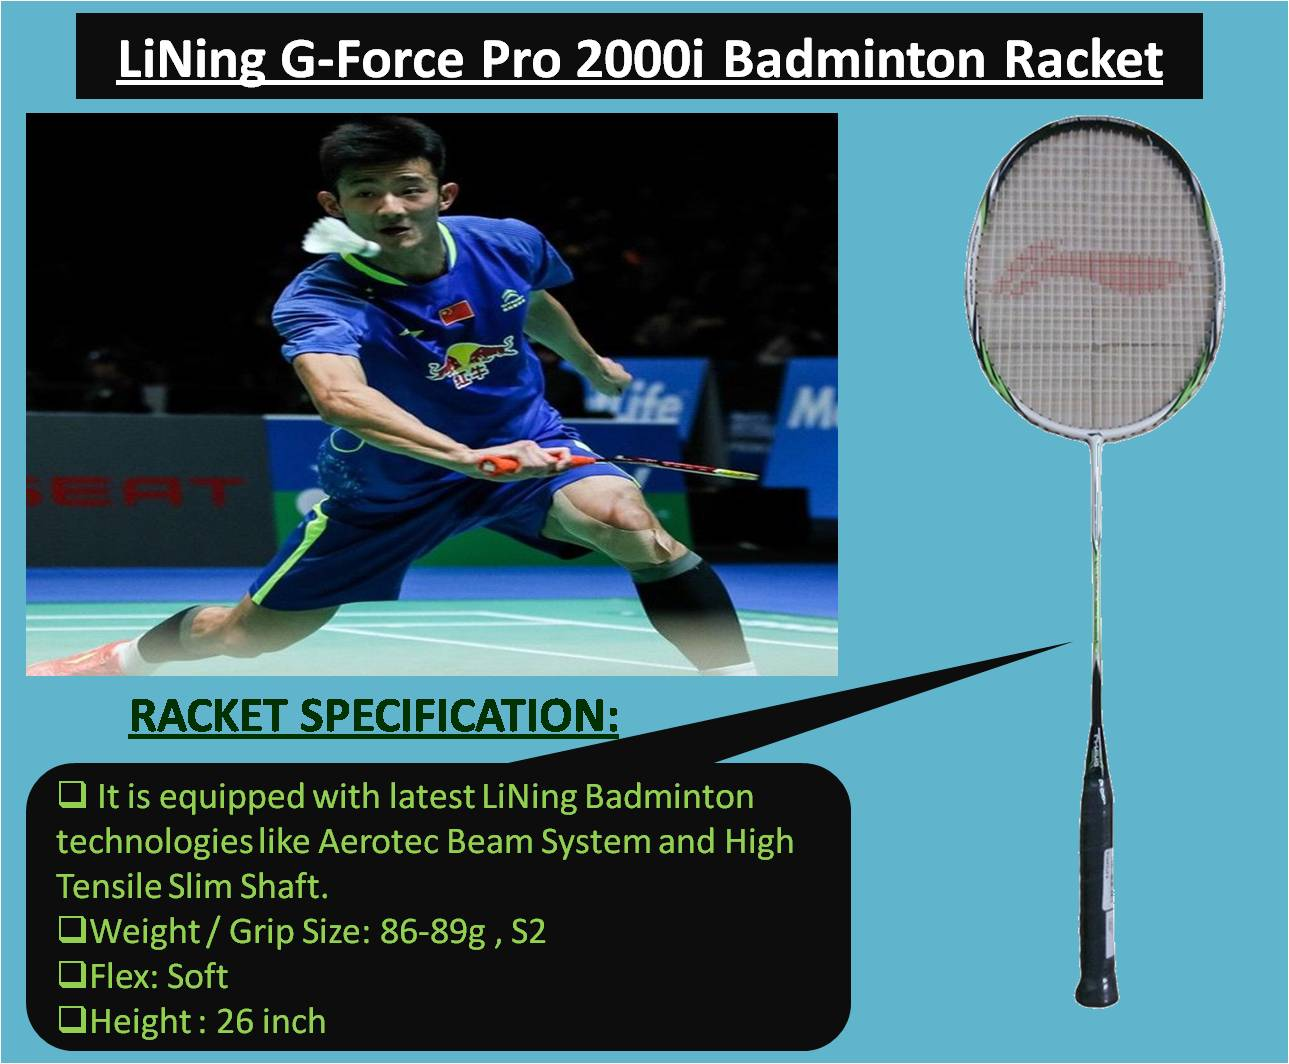 LiNing G-Force Pro 2000i Badminton Racket